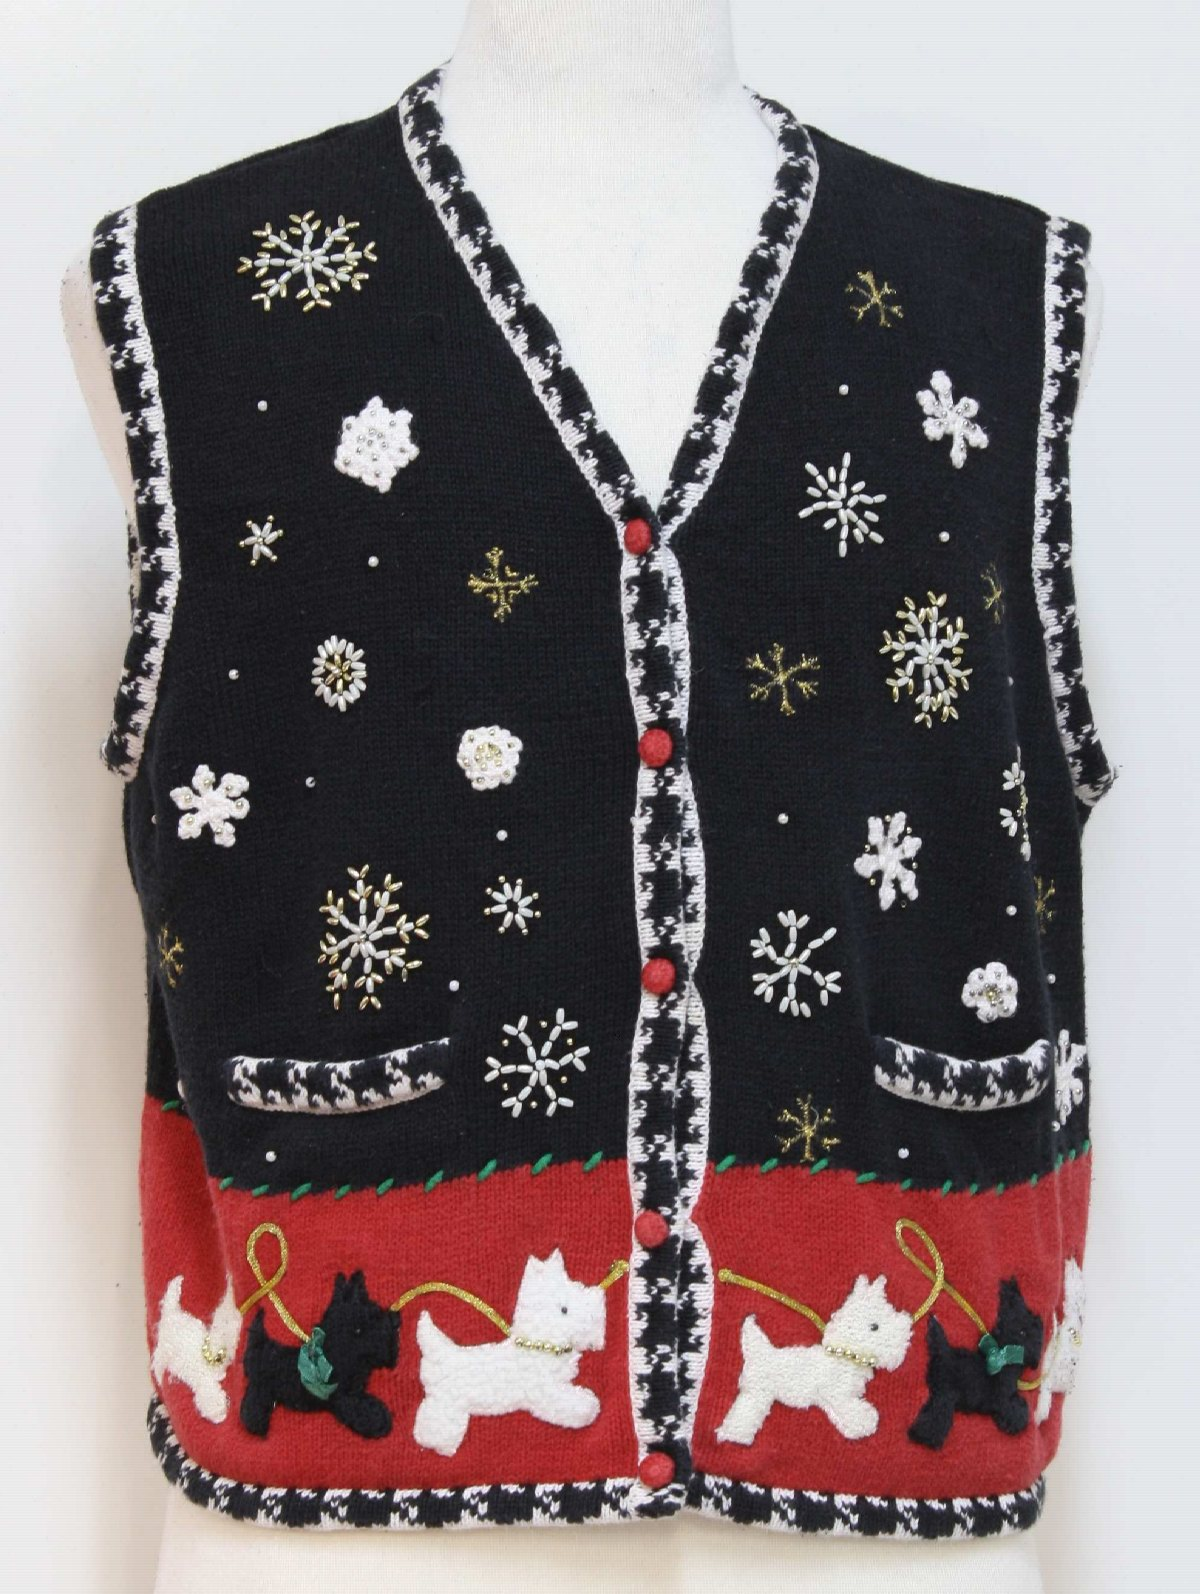 Ugly Christmas Sweater Vest Studio Joy Unisex Black